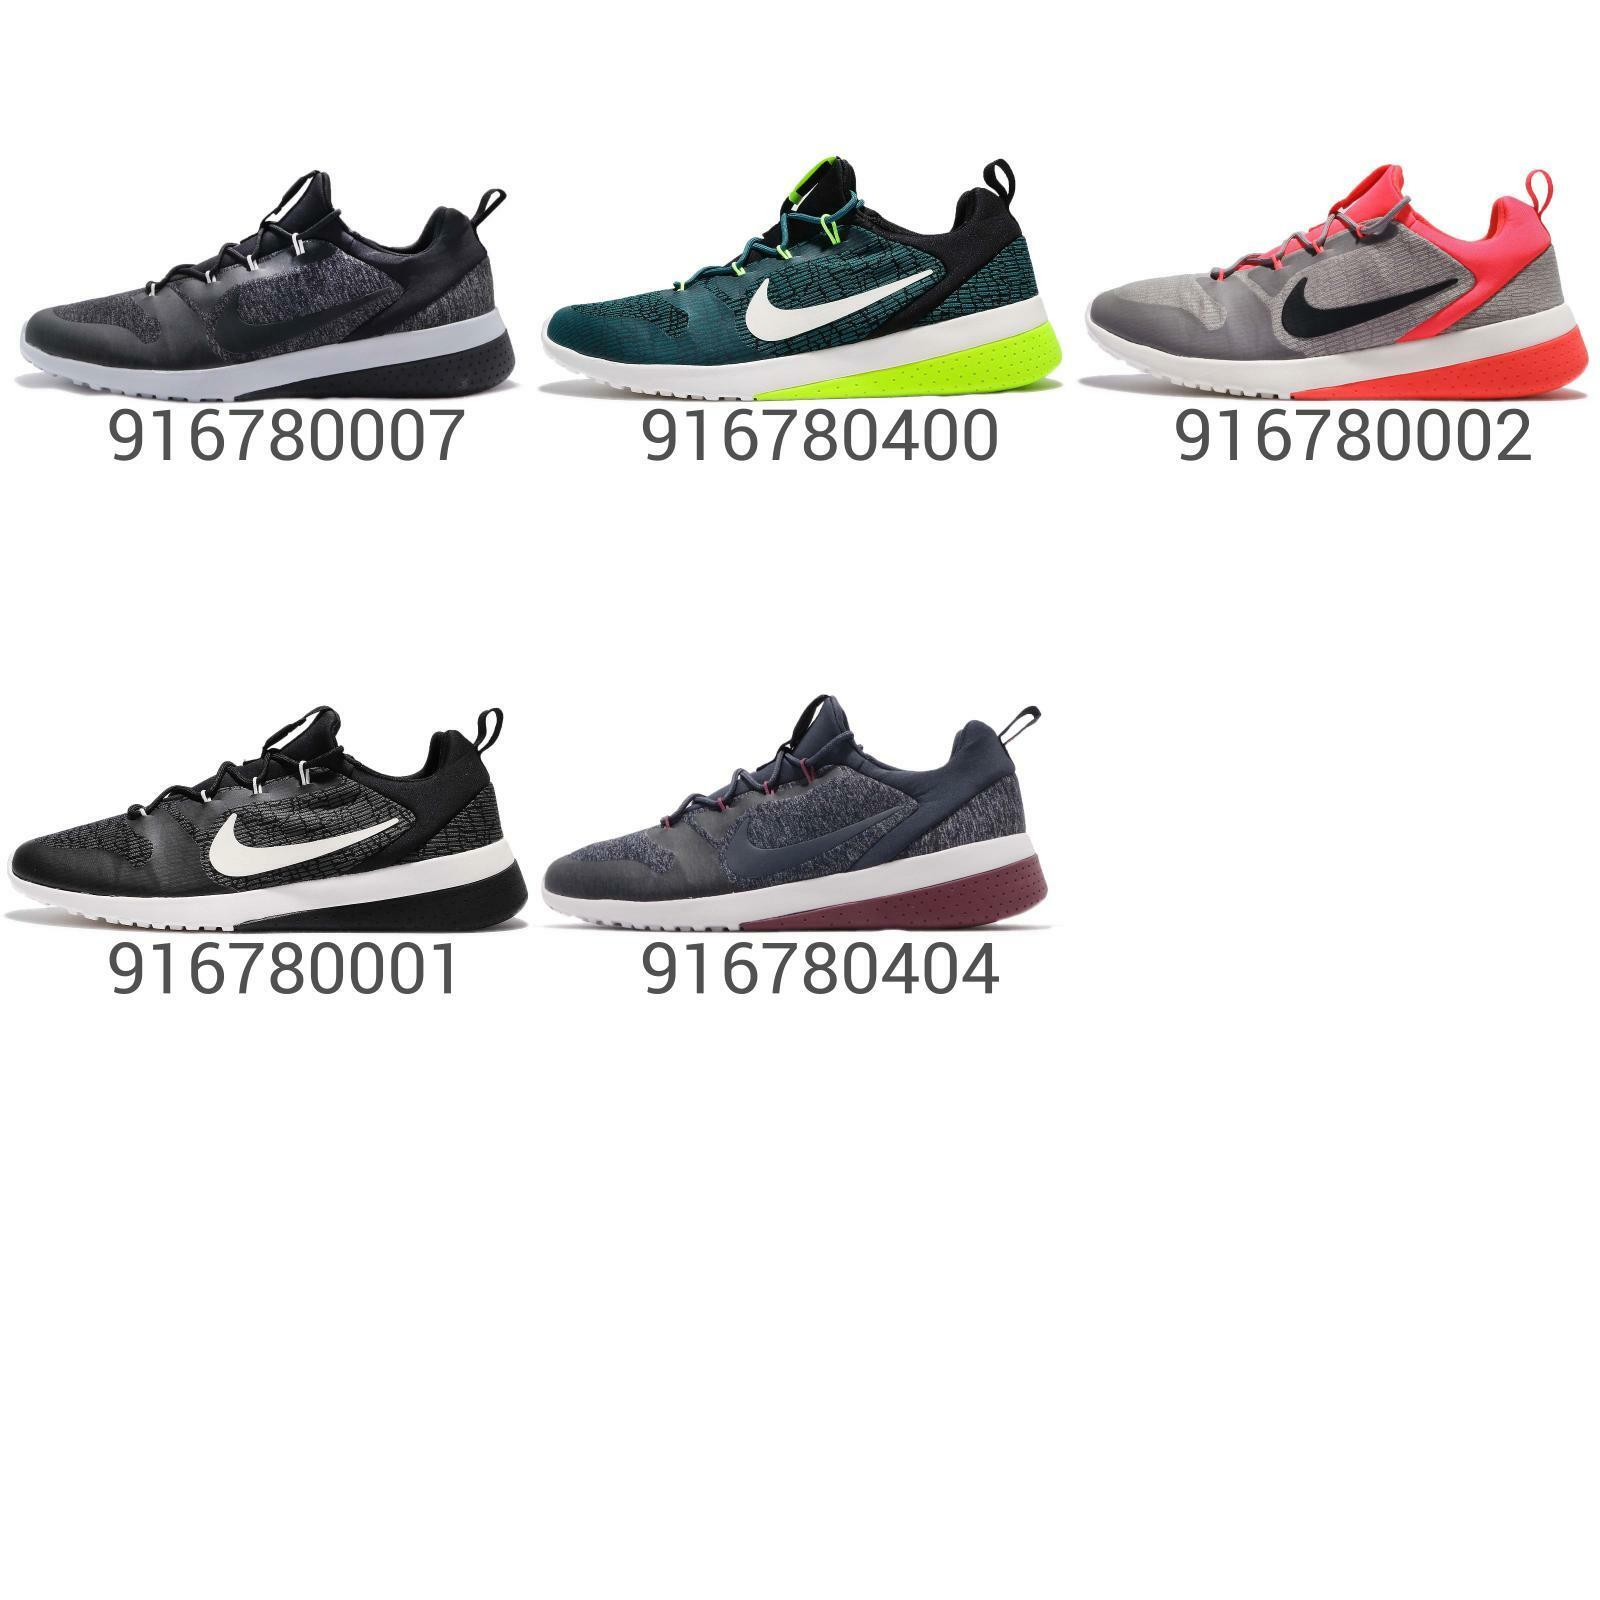 Nike Nike Nike CK Racer Mens Running shoes Lifestyle Sneakers Pick 1 e39711